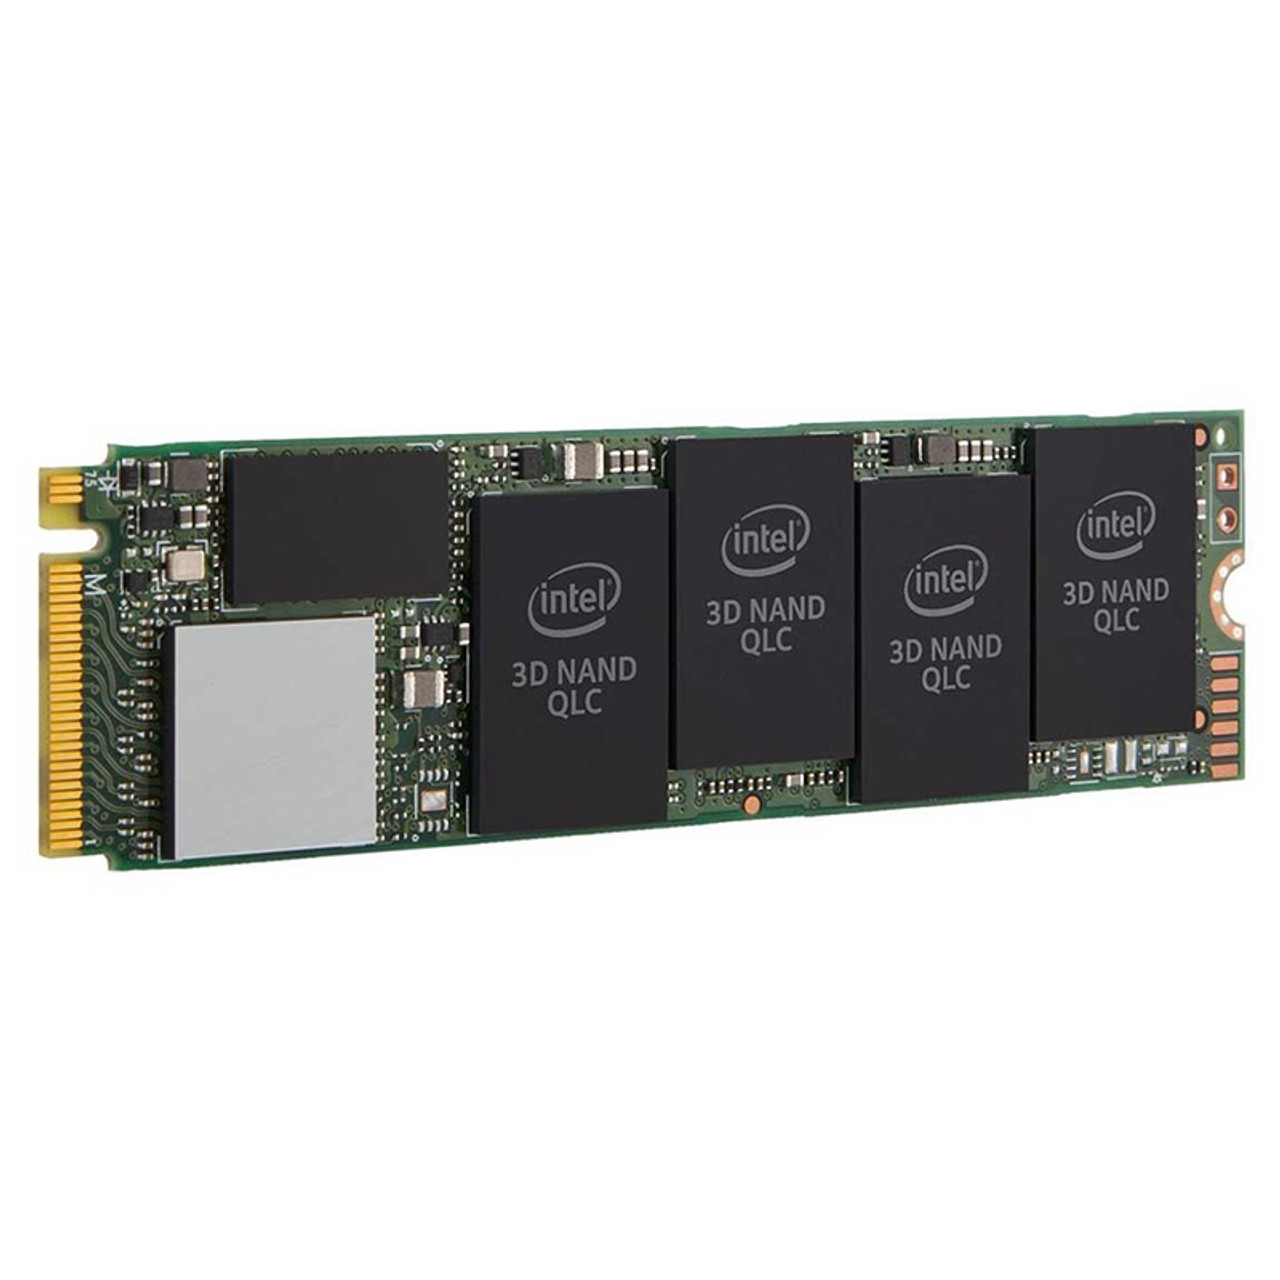 Product image for Intel 660p Series M.2 NVMe SSD 1TB | CX Computer Superstore